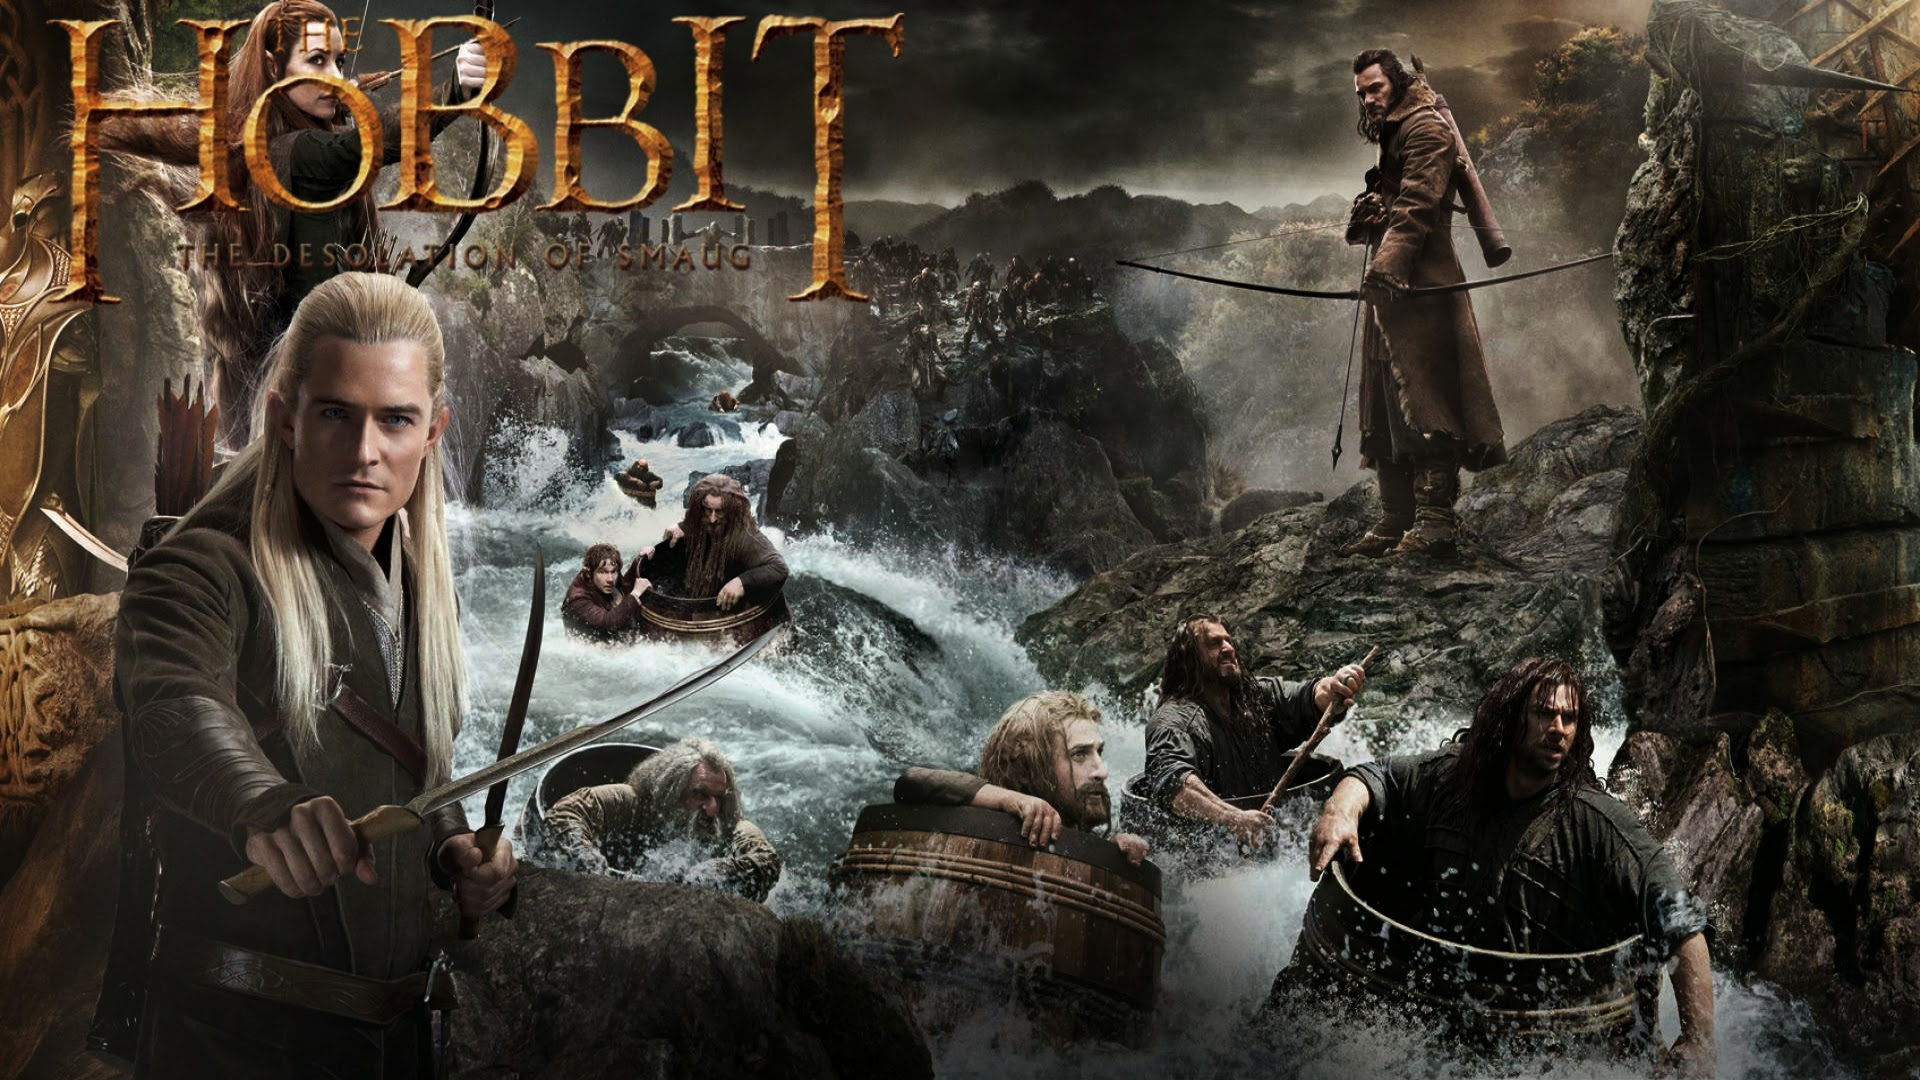 The Hobbit HD Wallpapers 1920x1080